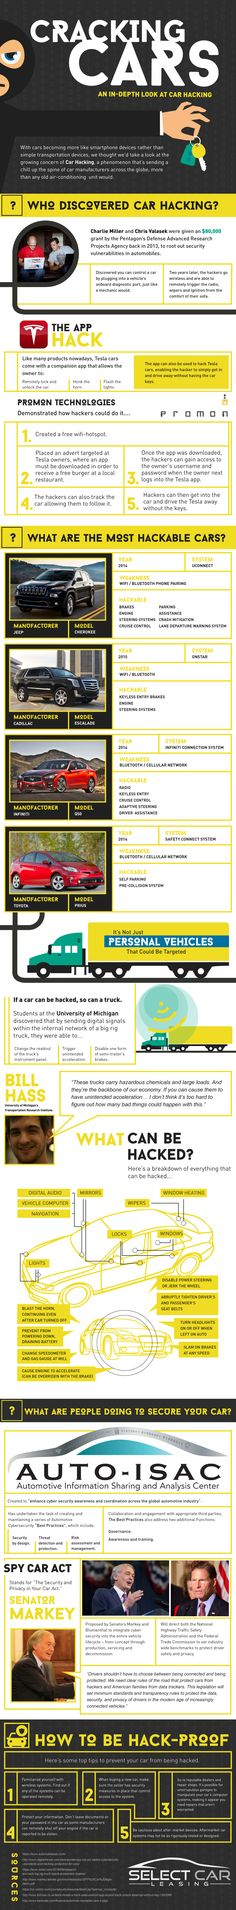 Car Cracking #Infographic #Cars #Hacks